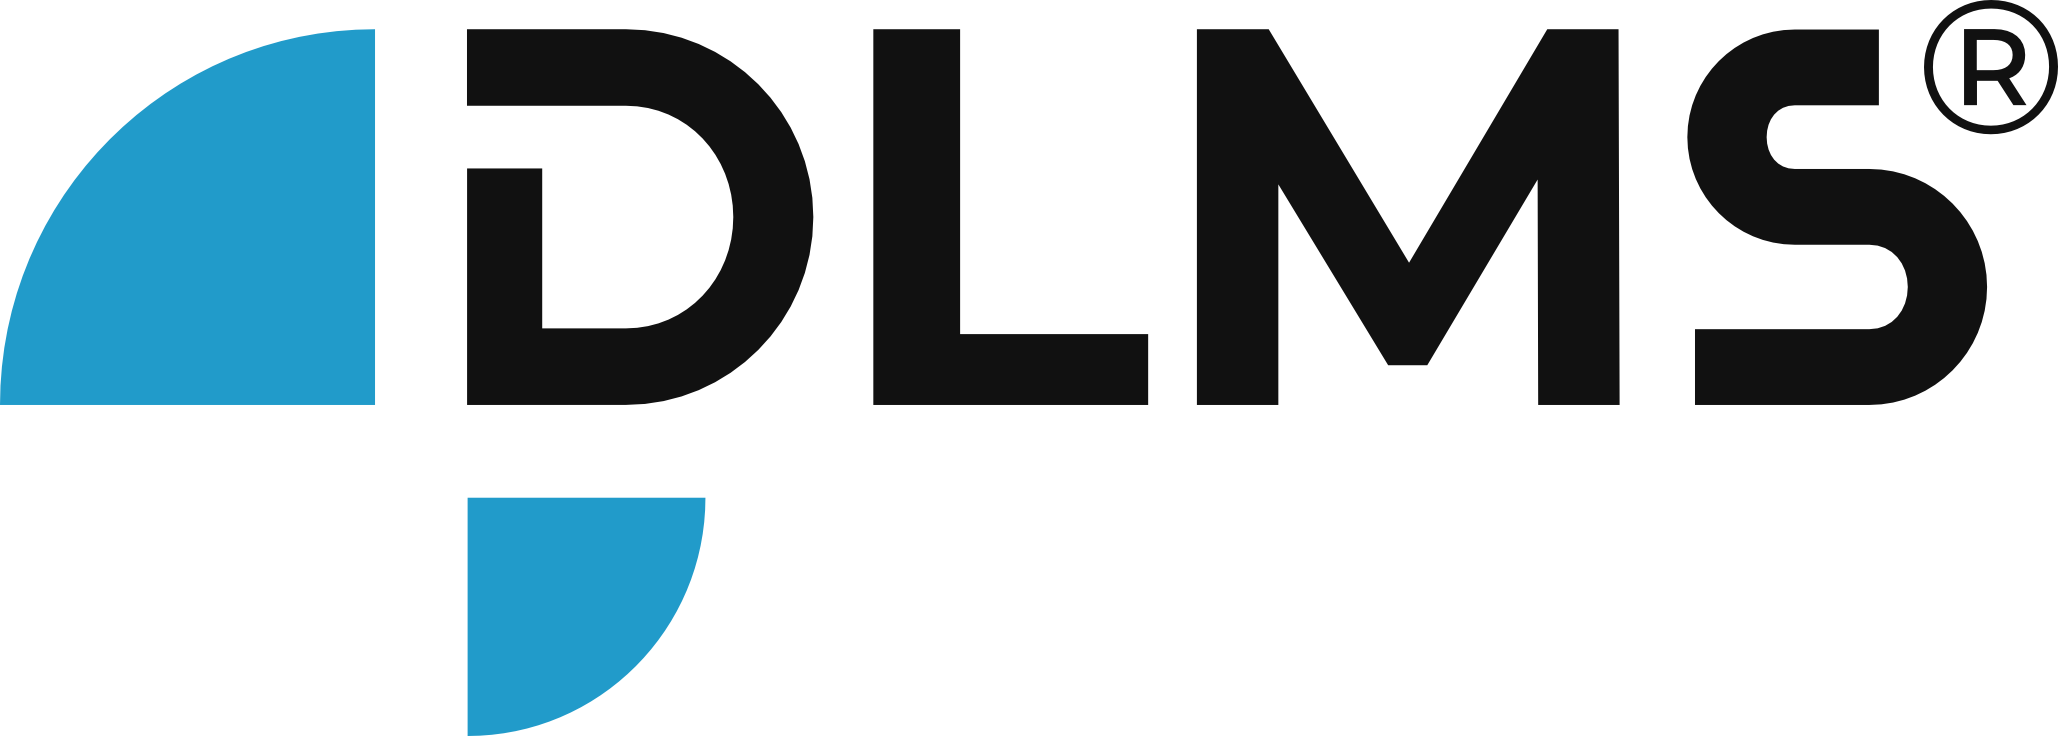 The DLMS User Association and the G3-PLC Alliance Sign Liaison Agreement to Extend Capabilities and Drive Innovation